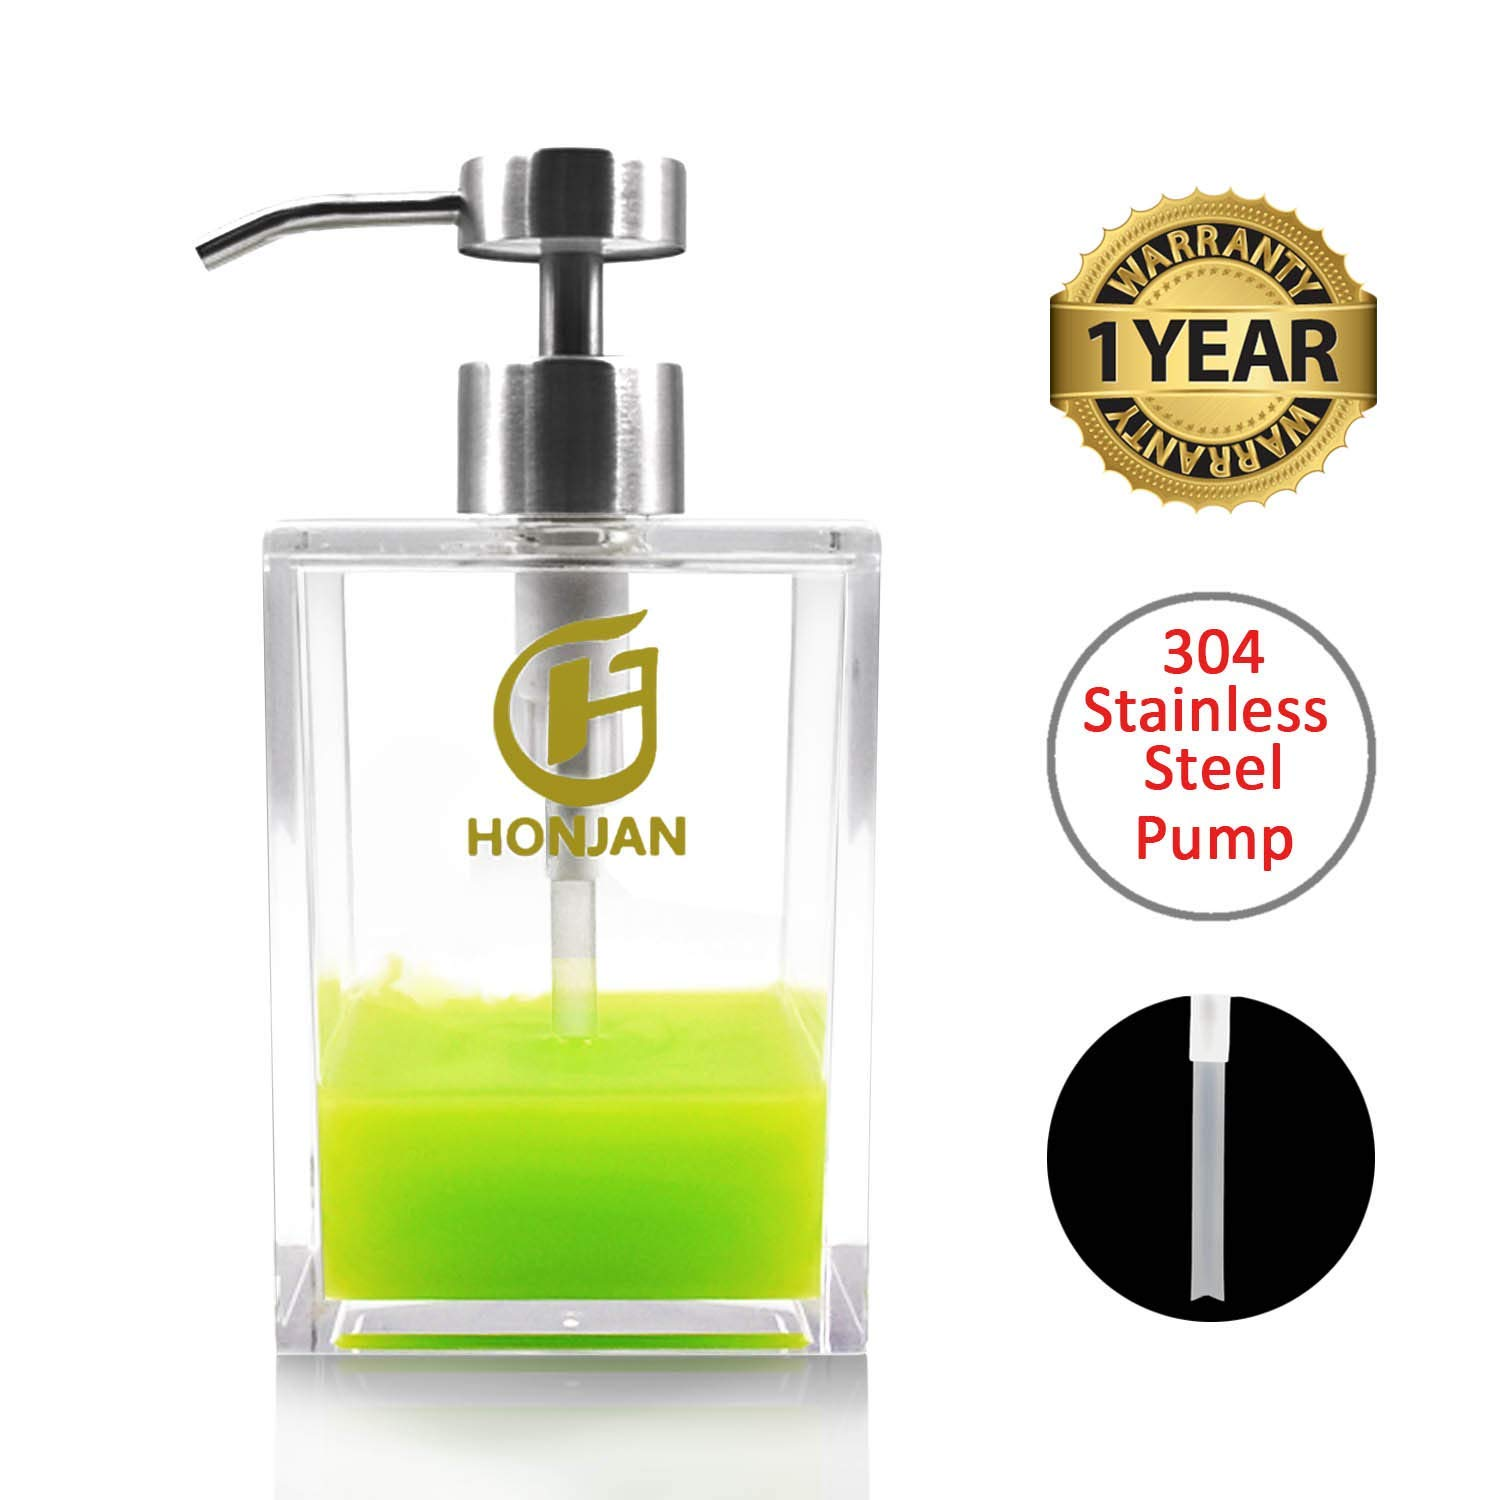 HONJAN Hand Dish Soap Dispenser 18oz Acrylic Clear Bath 18/8(304) Stainless Steel Pump for Kitchen Bathroom